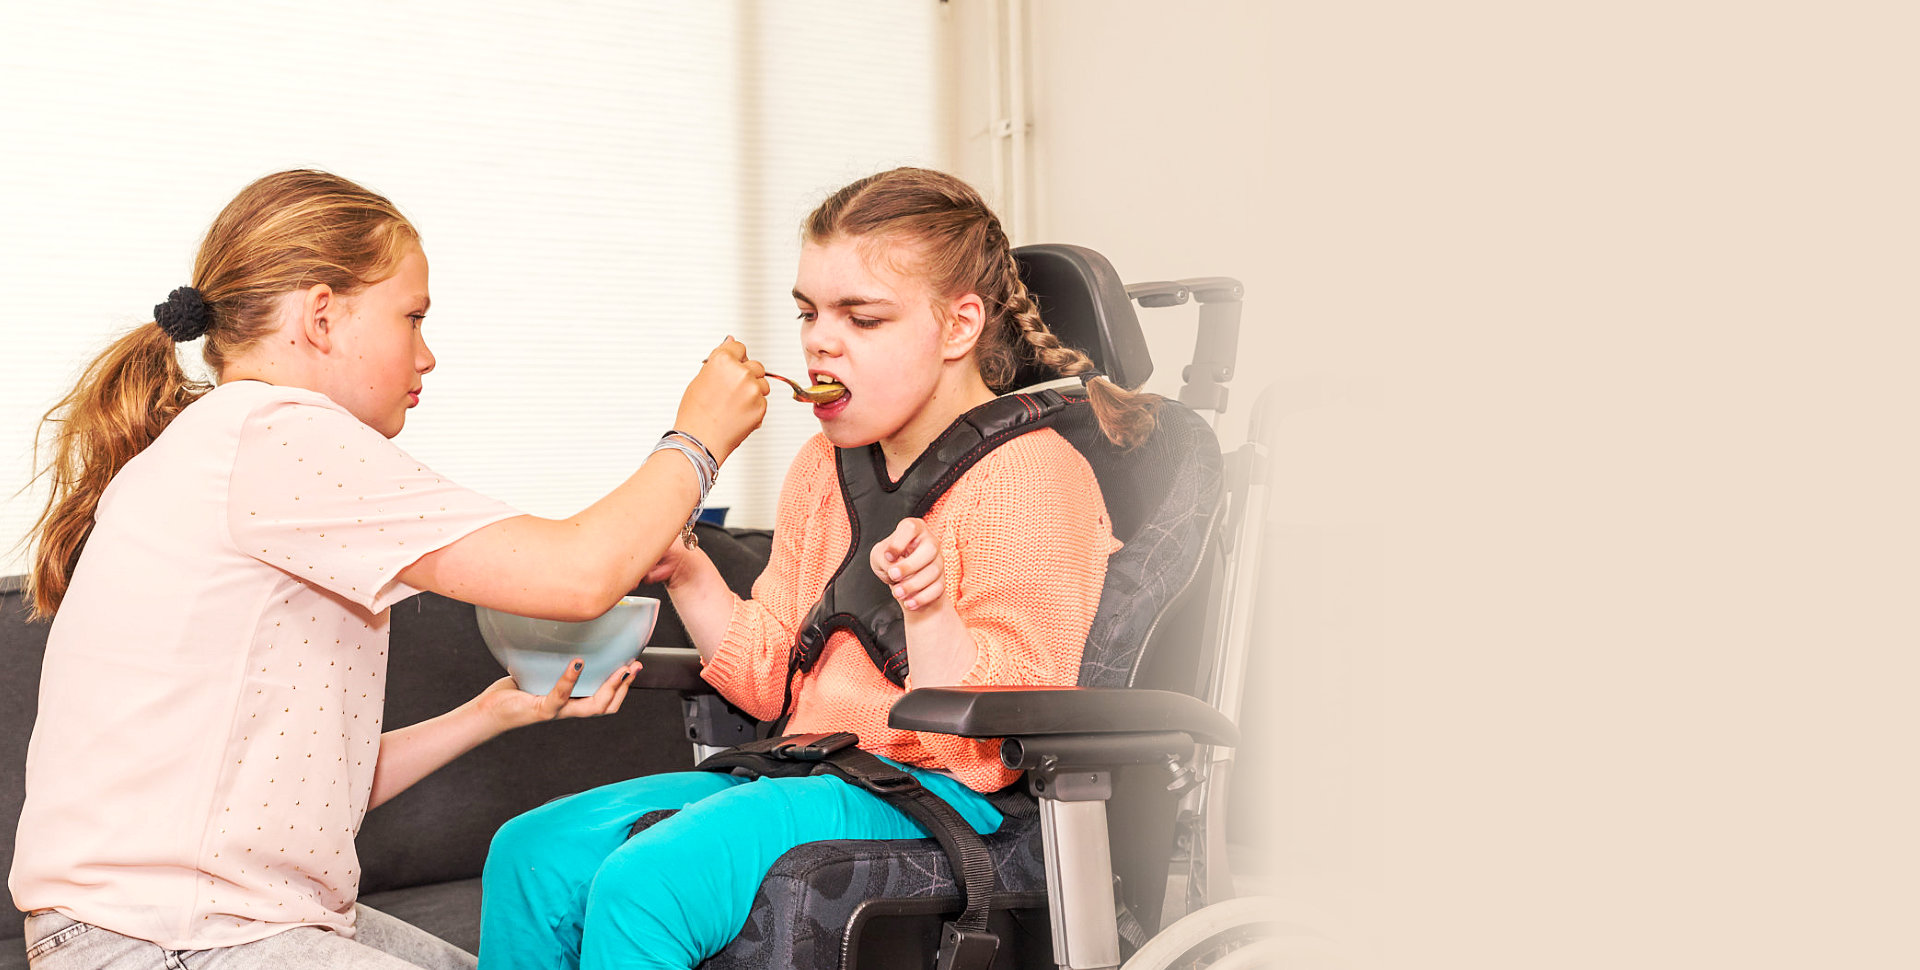 caregiver helping a child on wheelchair eat